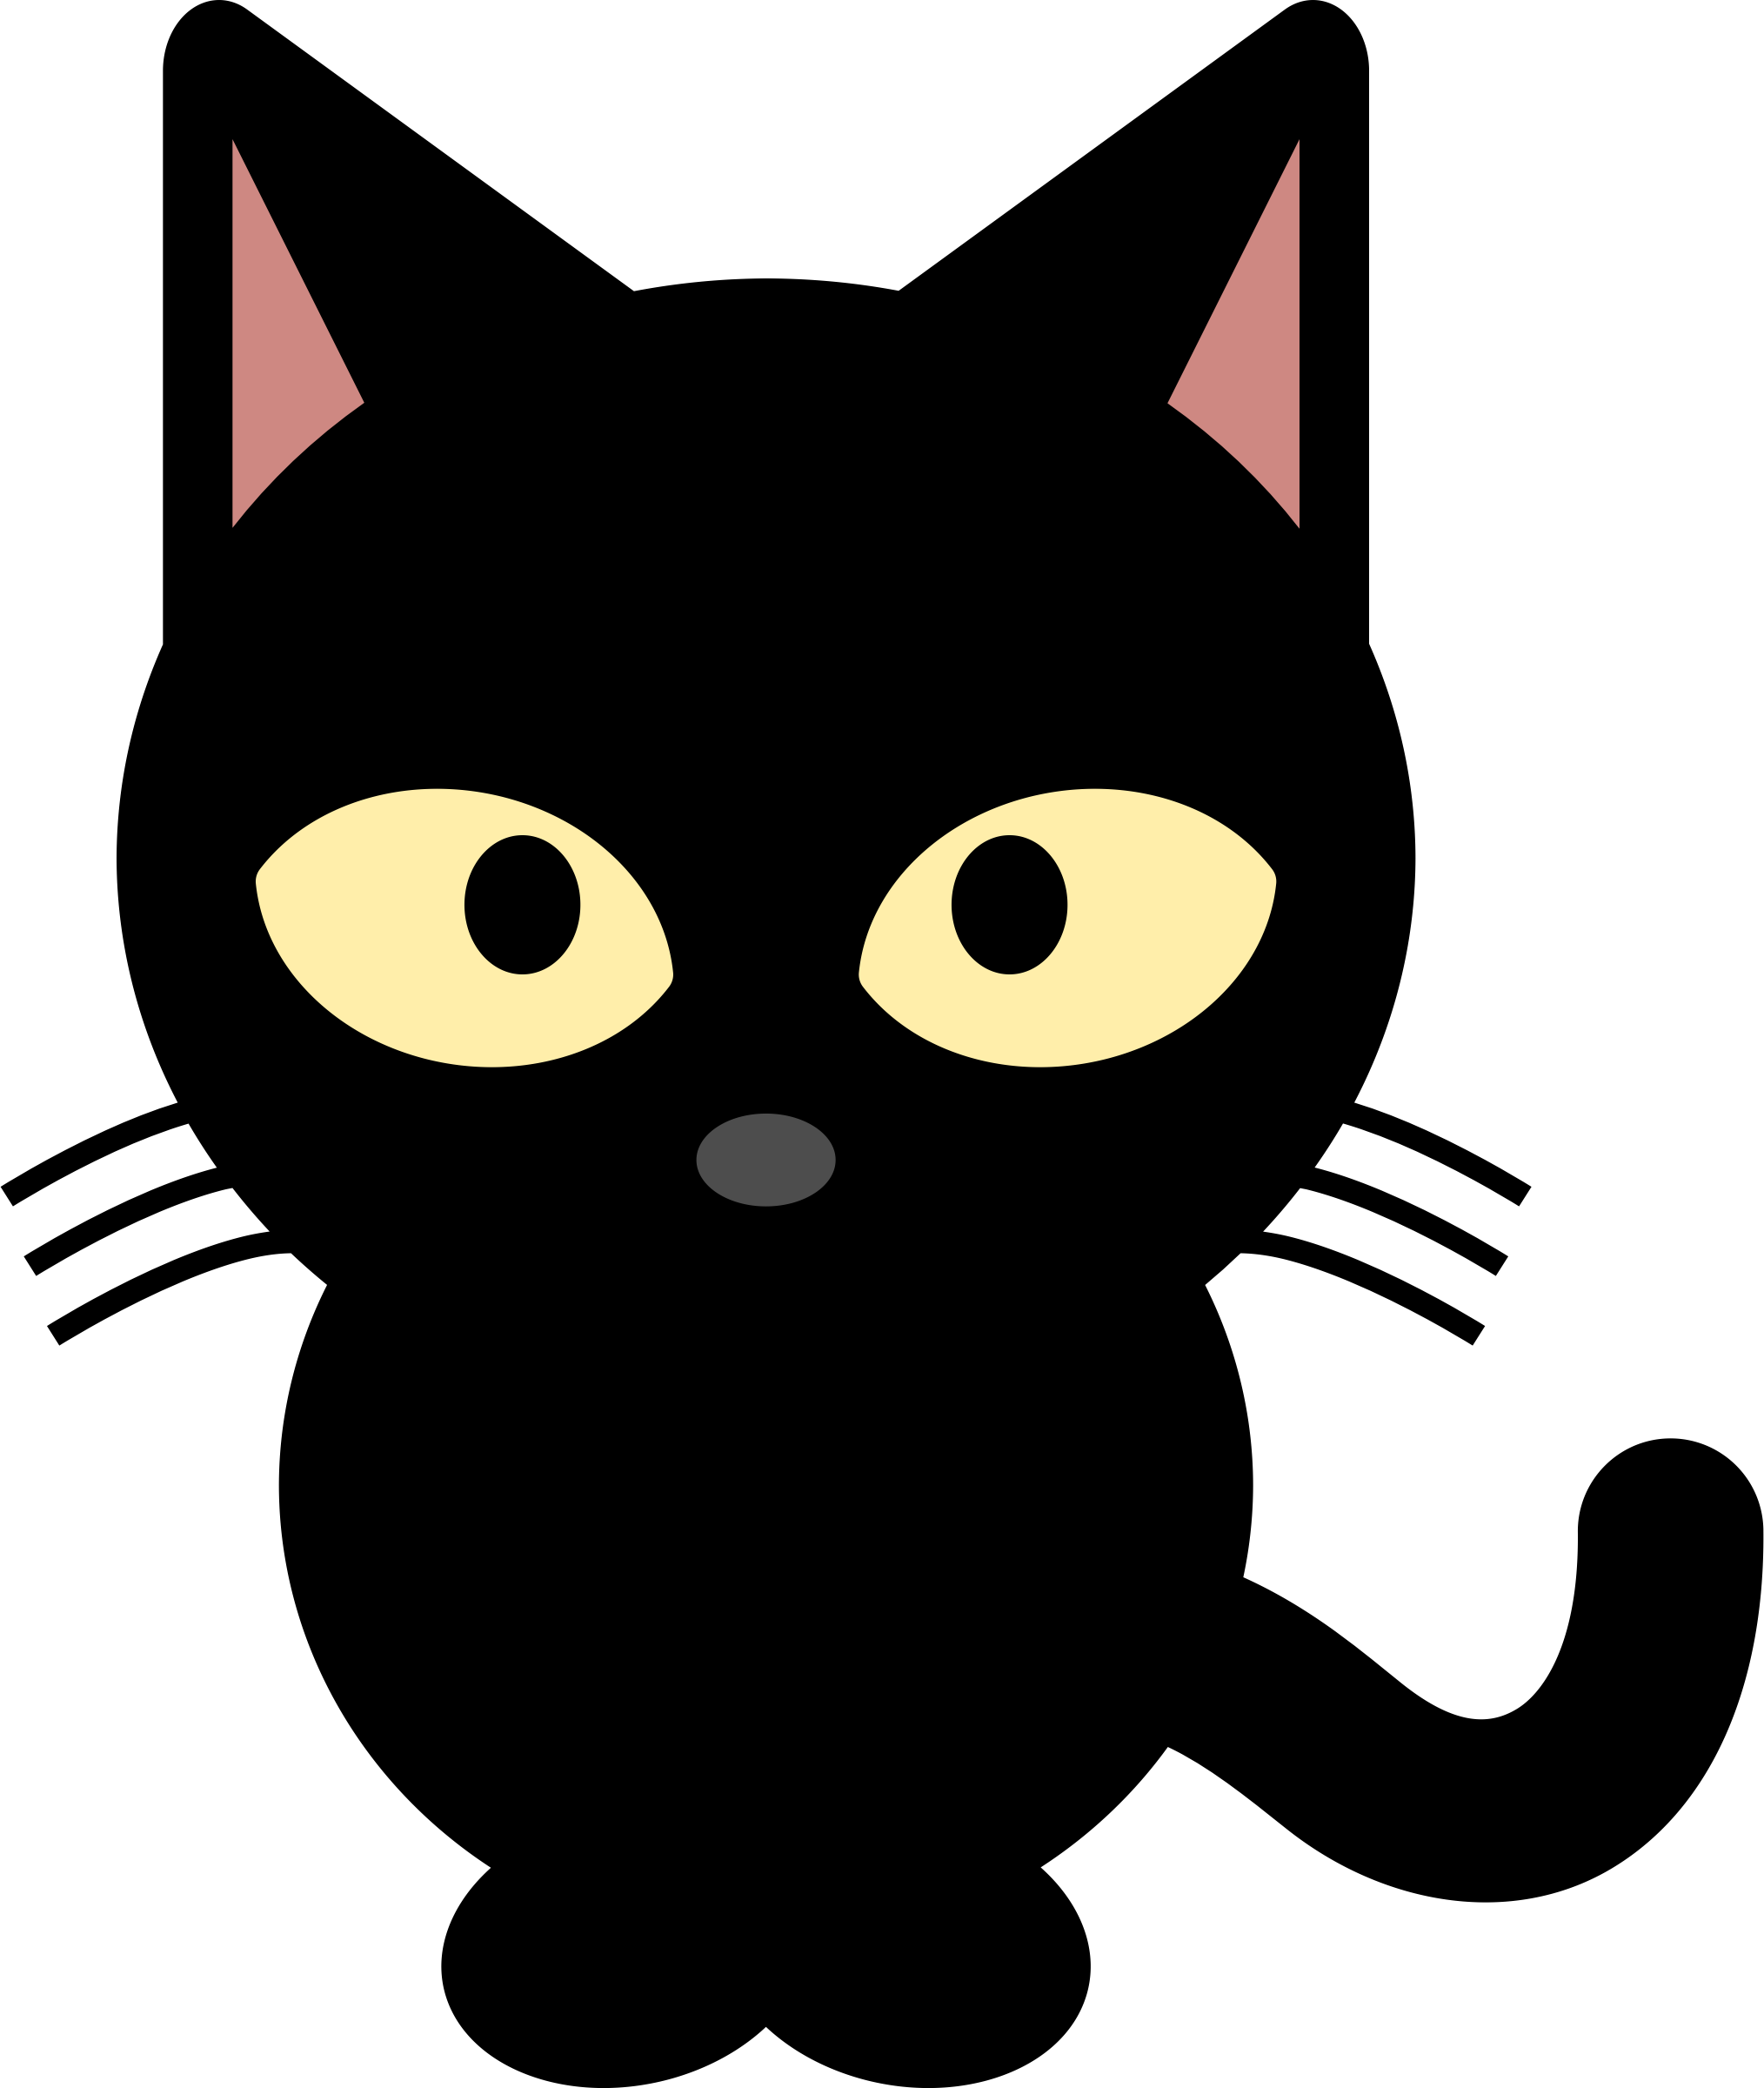 Black Cat Clipart - Clipart Kid